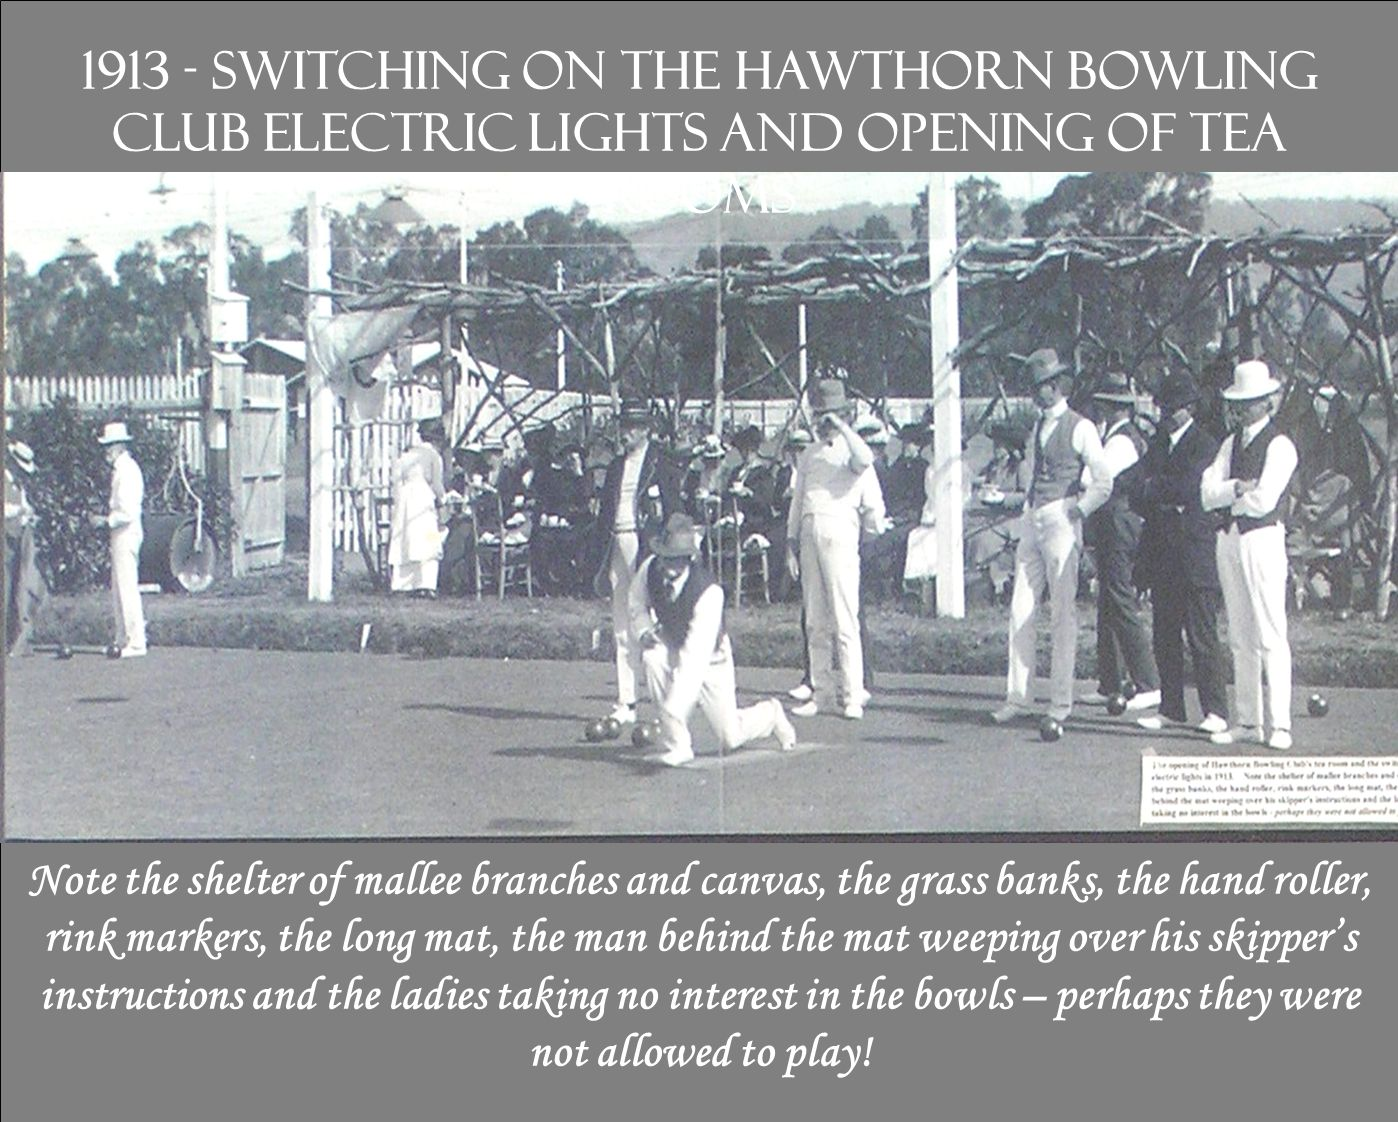 1913 - switching on the Hawthorn Bowling Club electric lights and opening of Tea Rooms Note the shelter of mallee branches and canvas, the grass banks